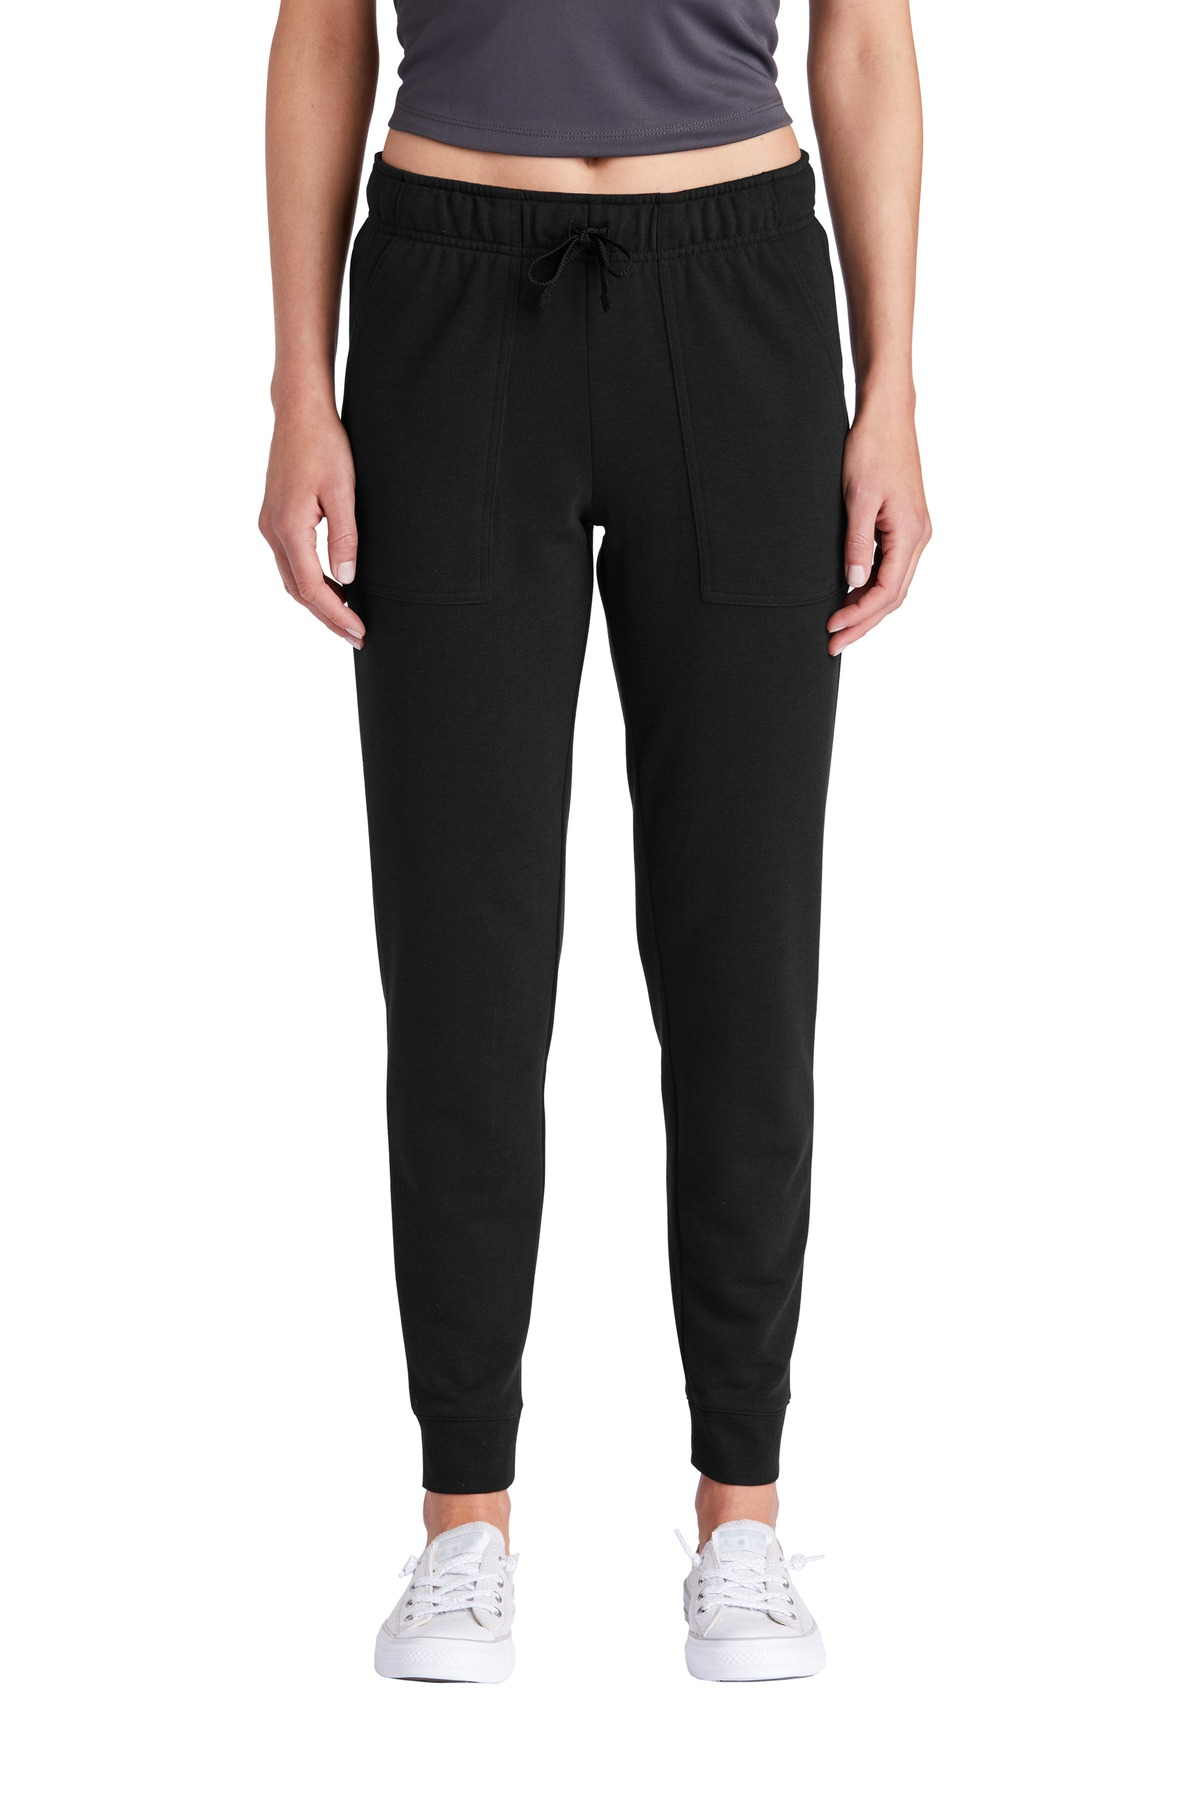 Sport-Tek  ®  Ladies PosiCharge  ®  Tri-Blend Wicking Fleece Jogger LST299 - Black Triad Solid